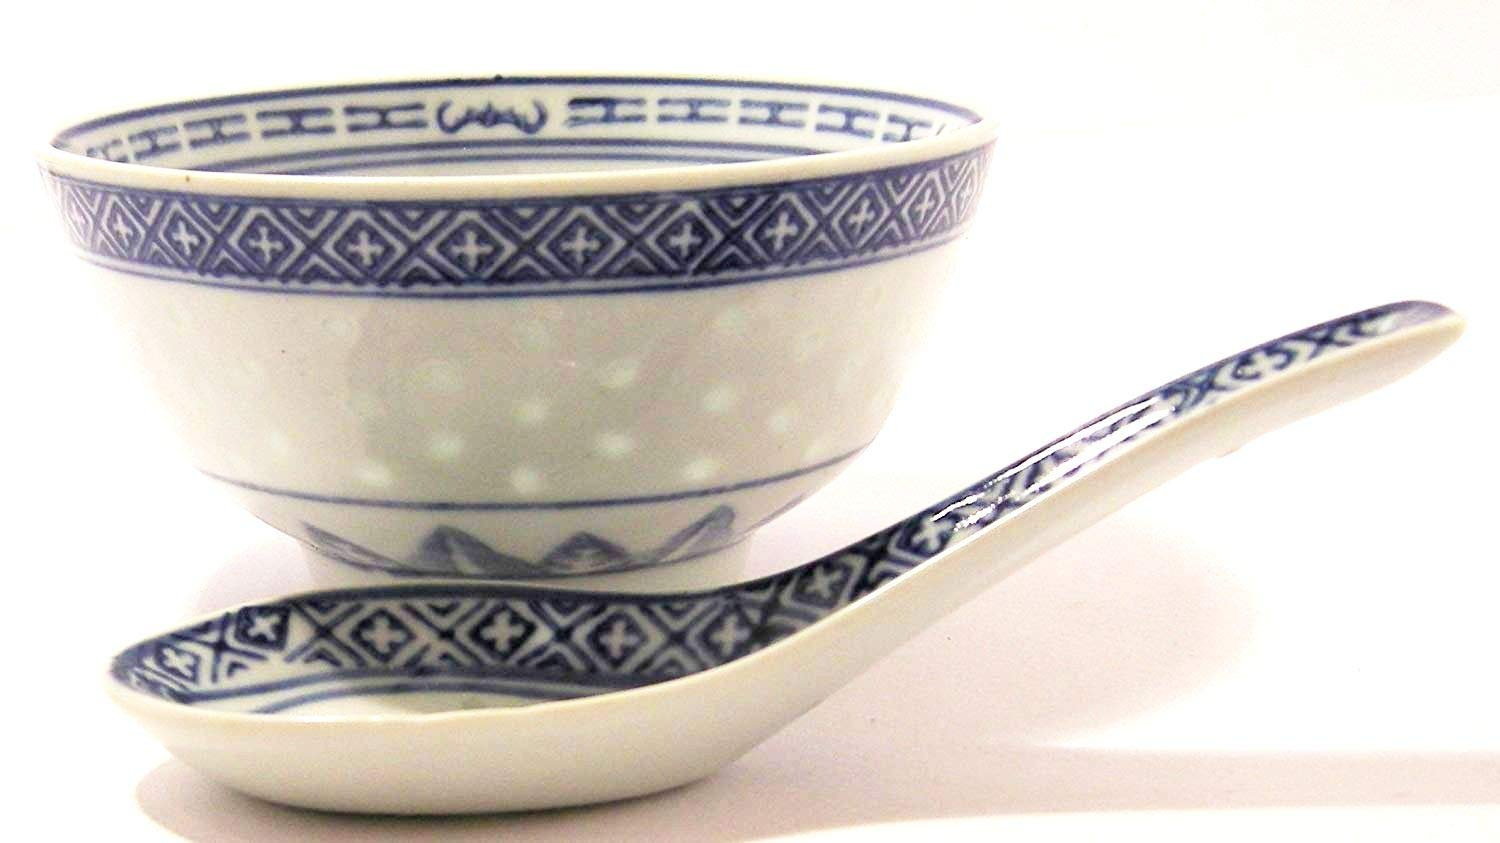 Bowl & Spoon set Ceramic Rice Pattern Guaranteed quality Cookware company 1620a Fc1620aG